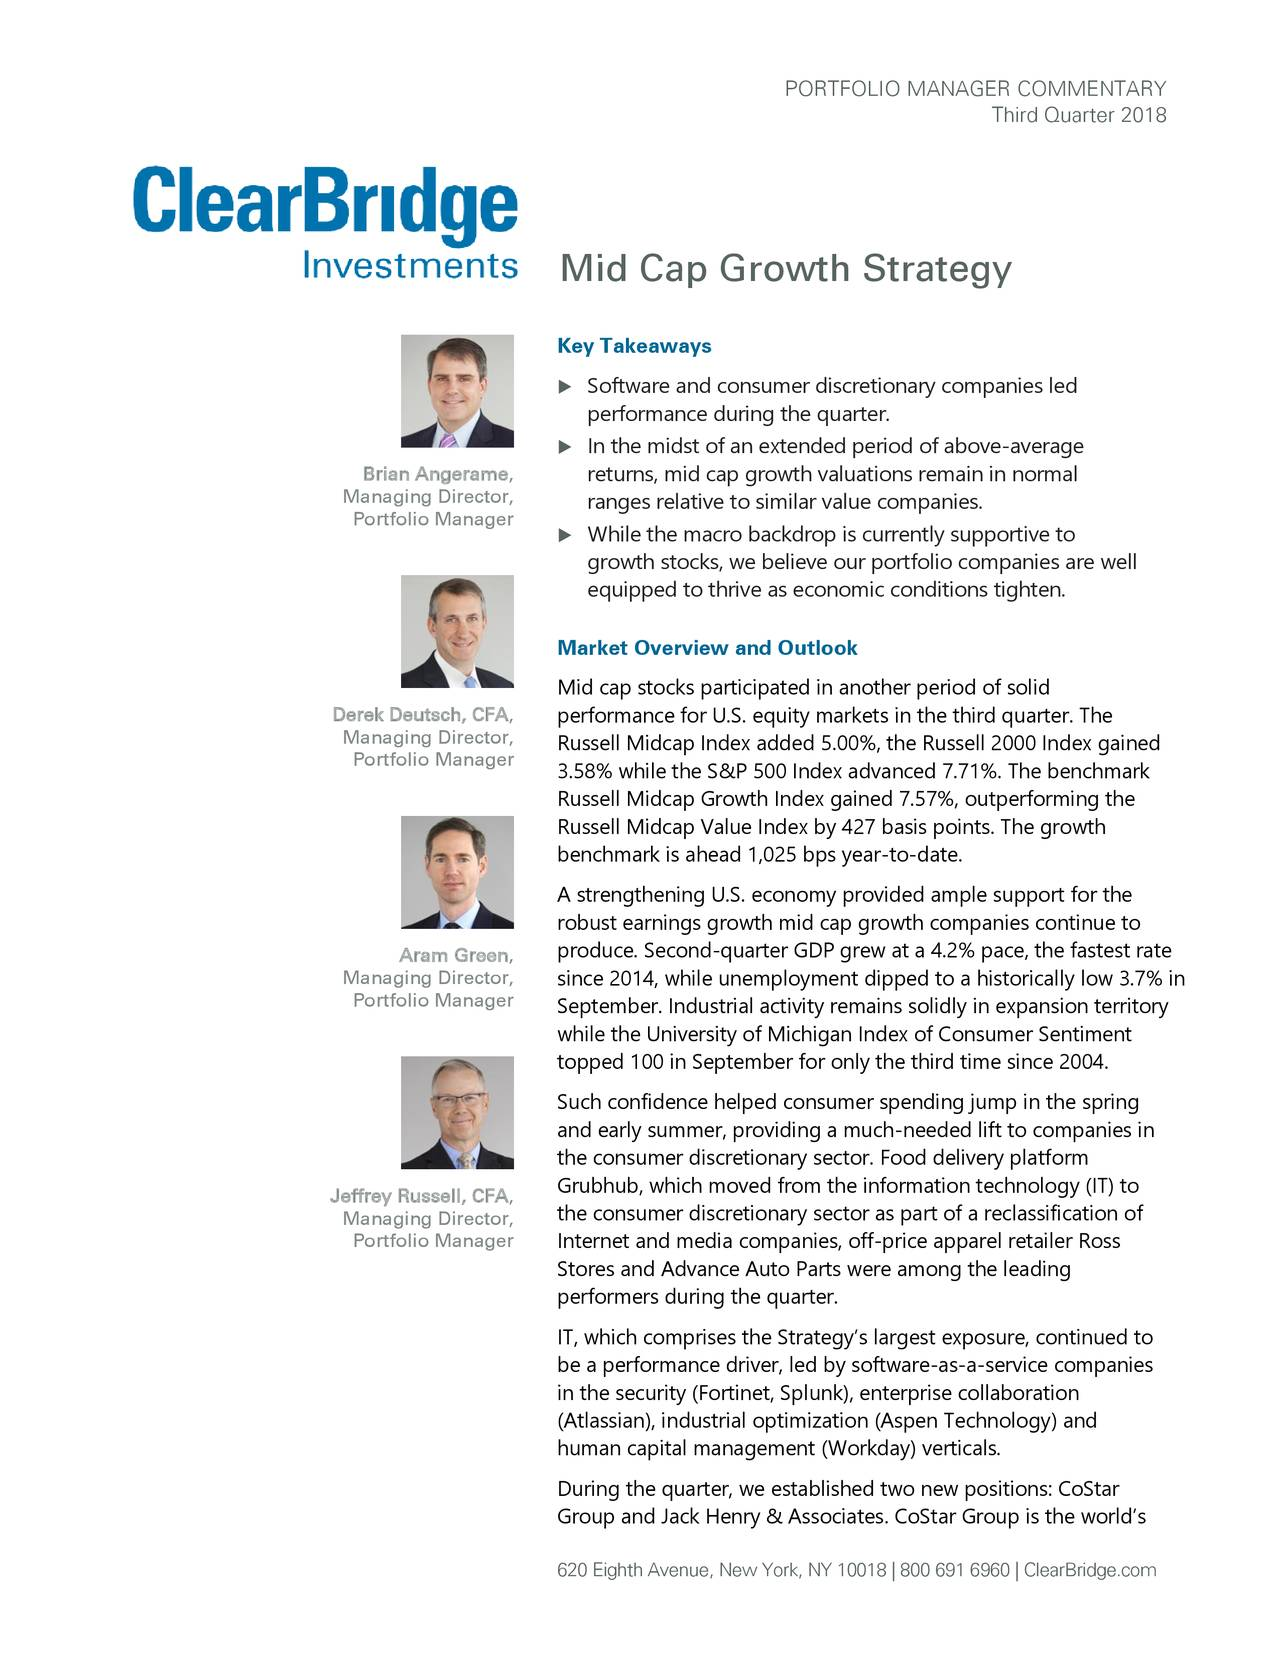 Third Quarter 2018 Mid Cap Growth Strategy Key Takeaways  Software and consumer discretionary companies led performance during the quarter.  In the midst of an extended period of above -average Brian Angerame, returns, mid cap growth valuations remain in normal Managing Director, ranges relative to s imilar value companies . Portfolio Manager  While the macro backdrop is currently supportive to growth stocks, we believe our portfolio companies are well equipped to thrive as economic conditions tighten. Market Overview and Outlook Mid cap stocks participated in another period of solid Derek Deutsch, CFA, performance for U.S. equity markets in the third quarter. The Managing Director, Russell Midcap Index added 5.00%, the Russell 2000 Index gained Portfolio Manager 3.58% while the S&P 500 Index advanced 7.71%. The benchmark Russell Midcap Growth Index gained 7.57%, outperforming the Russell Midcap Value Index by 427 basis points. The growth benchmark is ahead 1,025 bps year-to-date. A strengthening U.S. economy provided ample support for the robust earnings growth mid cap growth companies continue to produce. Second-quarter GDP grew at a 4.2% pace, the fastest rate Aram Green, Managing Director, since 2014, while unemployment dipped to a historically low 3.7% in Portfolio Manager September. Industrial activity remains solidly in expansion territory while the University of Michigan Index of Consumer Sentiment topped 100 in September for only the third time since 2004. Such confidence helped consumer spending jump in the spring and early summer, providing a much-needed lift to companies in the consumer discretionary sector. Food delivery platform Jeffrey Russell, CFA, Grubhub, which moved from the information technology (IT) to Managing Director, the consumer discretionary sector as part of a reclassification of Portfolio Manager Internet and media companies, off-price apparel retailer Ross Stores and Advance Auto Parts were among the leading performers during the quart